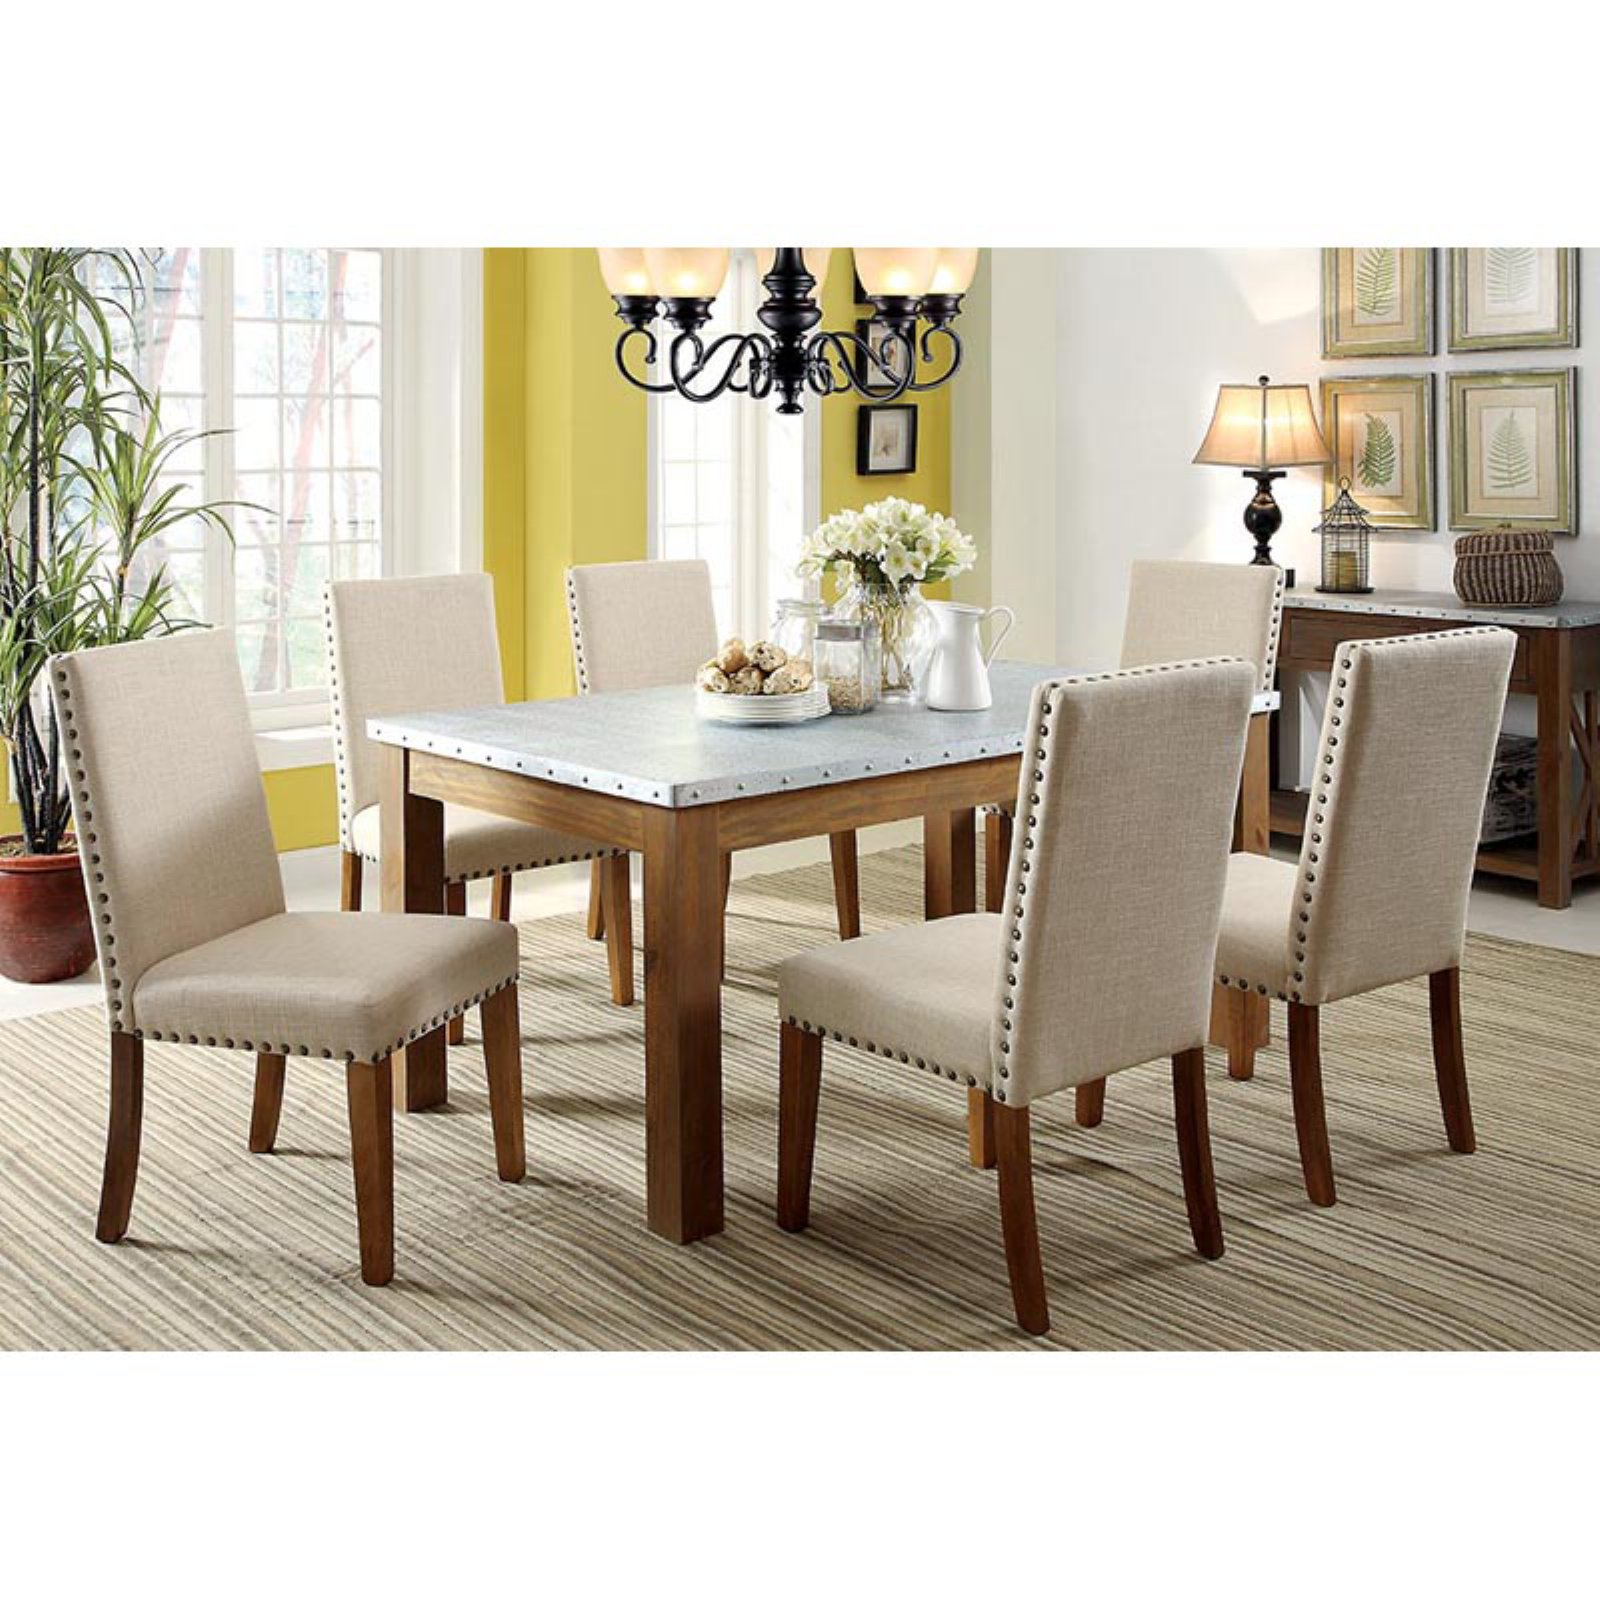 Furniture of America Workins Iron Top Dining Table - Natural